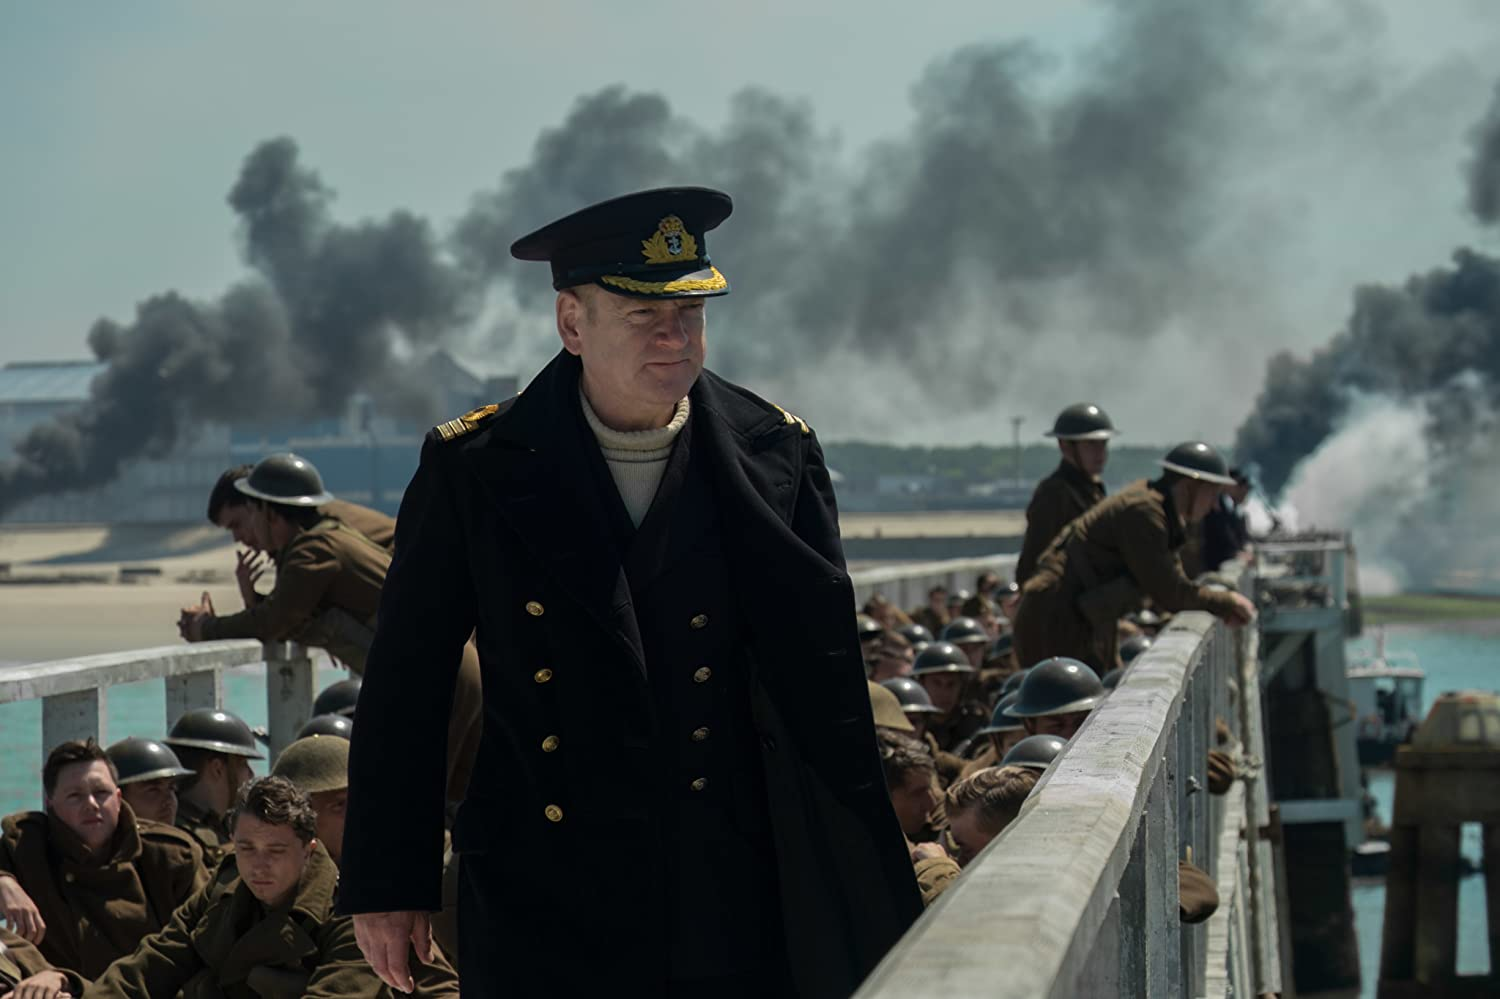 Kenneth Branagh in Dunkirk (2017)